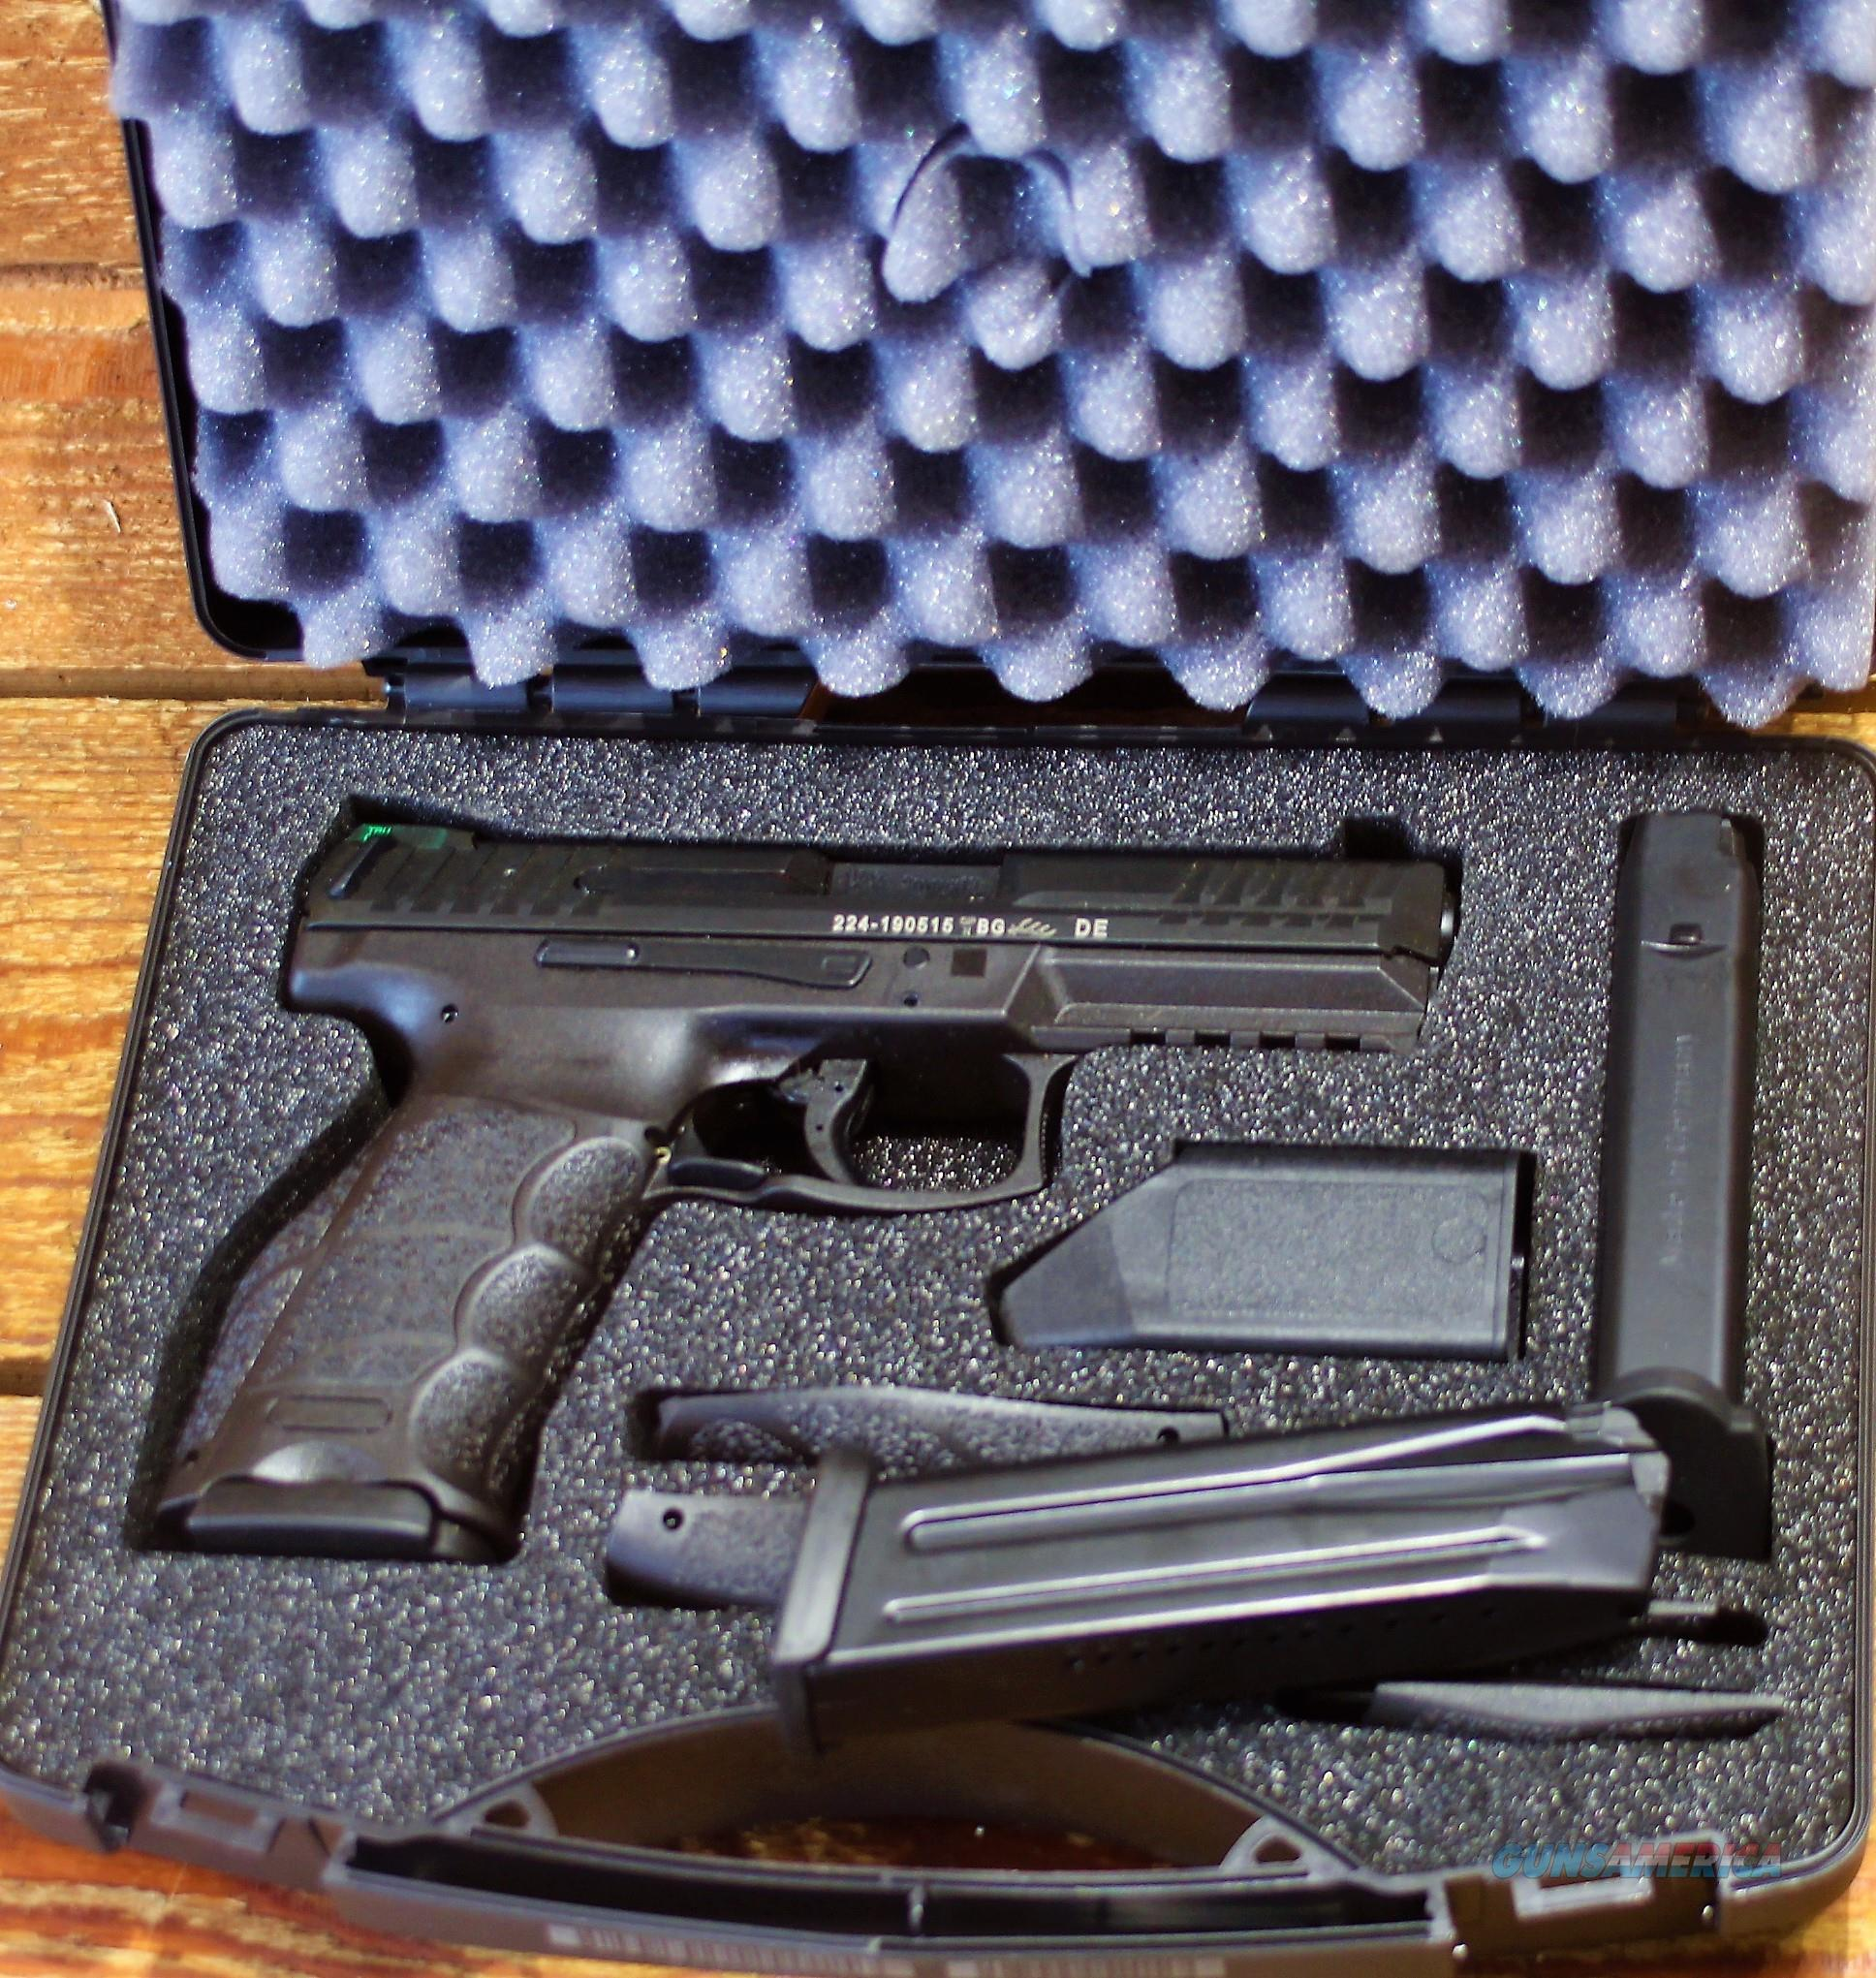 "EASY PAY $58  Heckler and Koch H&K VP9 Semi Auto Pistol 9mm Luger 4.09"" Barrel 15 Rounds Striker Fired 3-Dot Night Sights Polymer Frame Black Finish Ambidextrous magazine release Browning type modified linkless locking system 700009LE-A5     Guns > Pistols > Heckler & Koch Pistols > Polymer Frame"